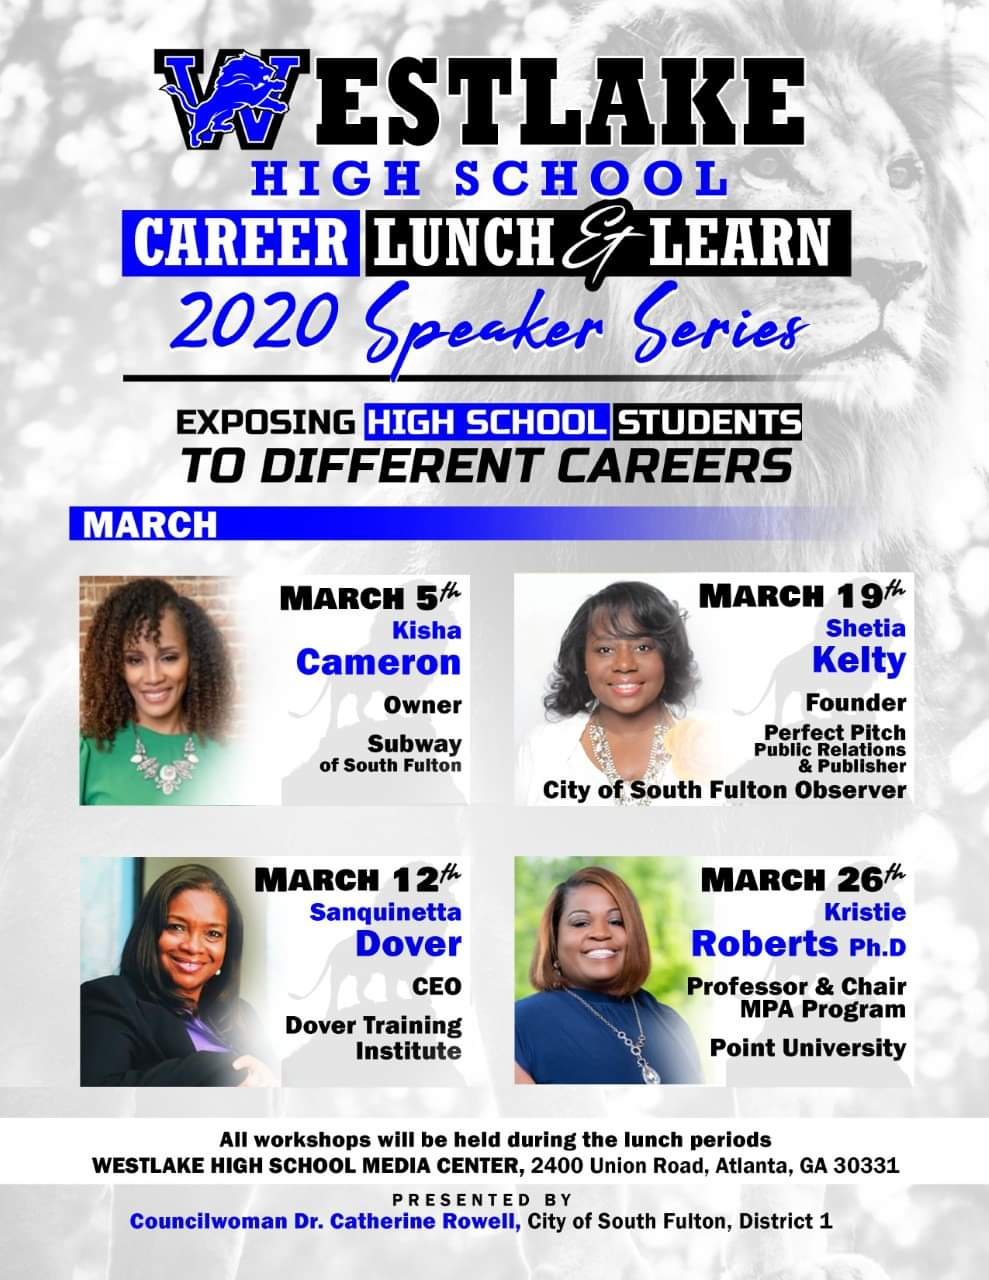 Westlake High School Career Lunch and Learn